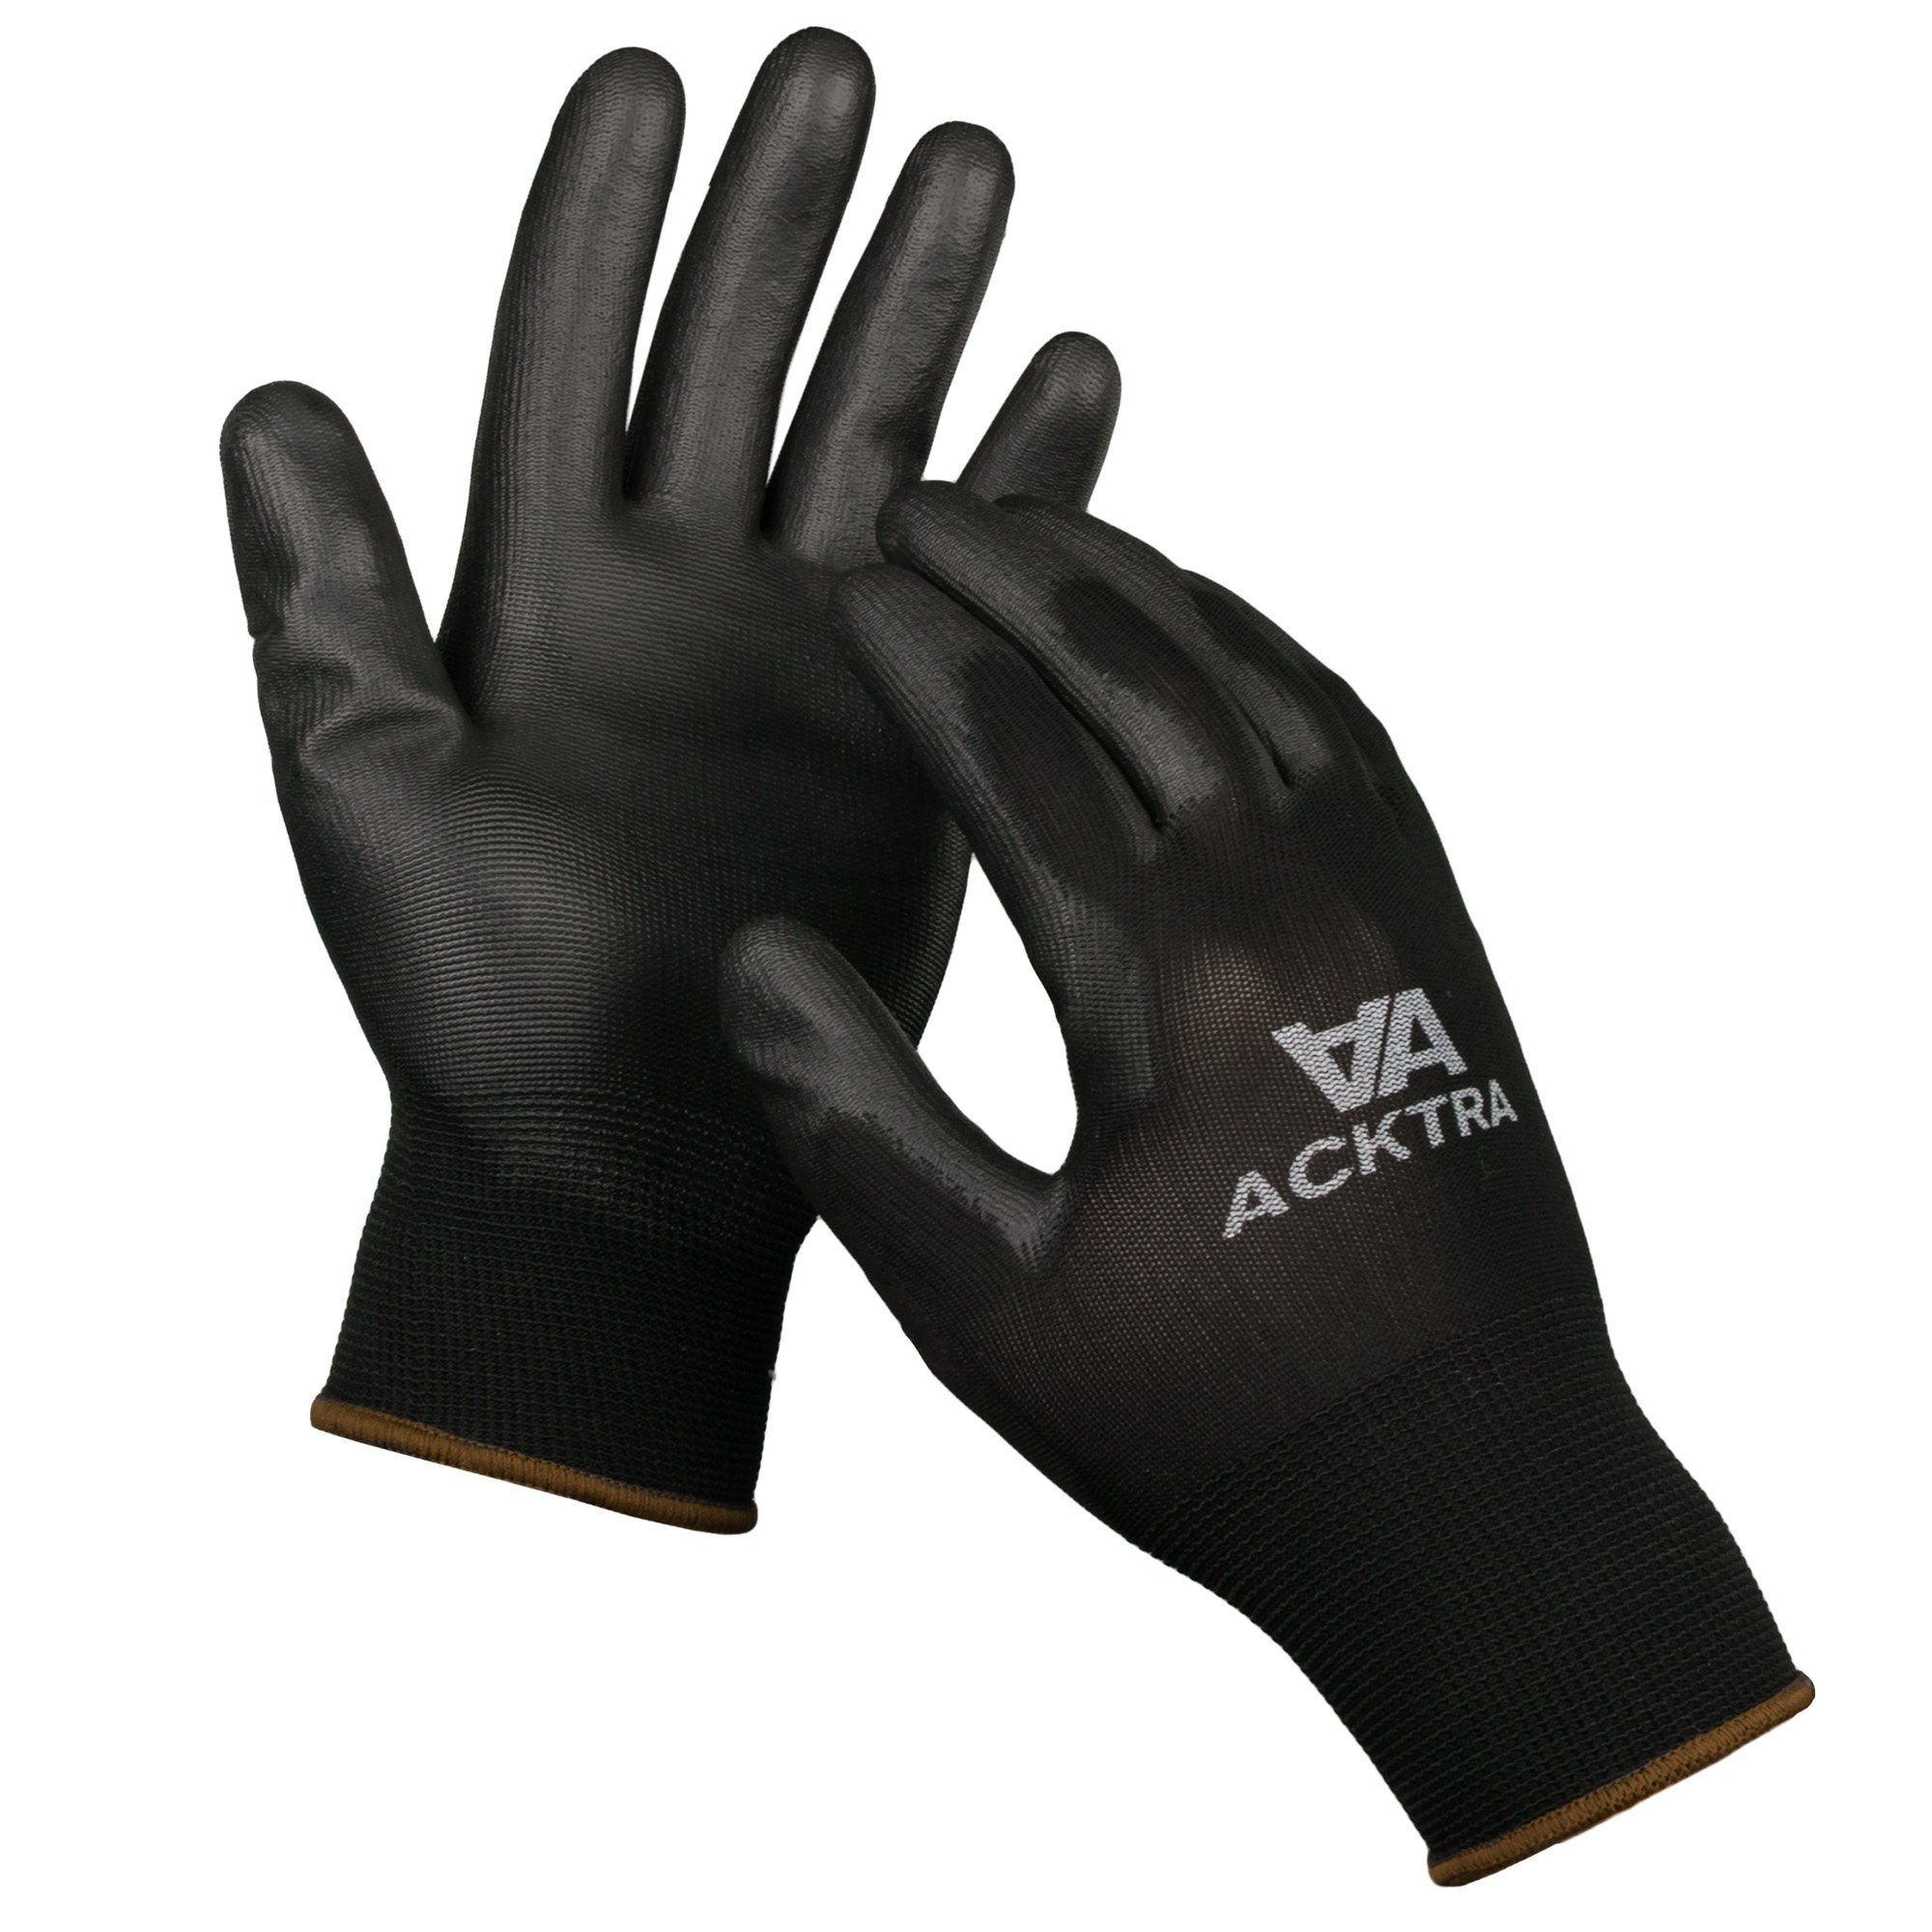 ACKTRA Ultra-Thin Polyurethane (PU) Coated Nylon Safety WORK GLOVES 12 Pairs, Knit Wrist Cuff, for Precision Work, for Men & Women, WG002 Black Polyester, Black Polyurethane, Small 1